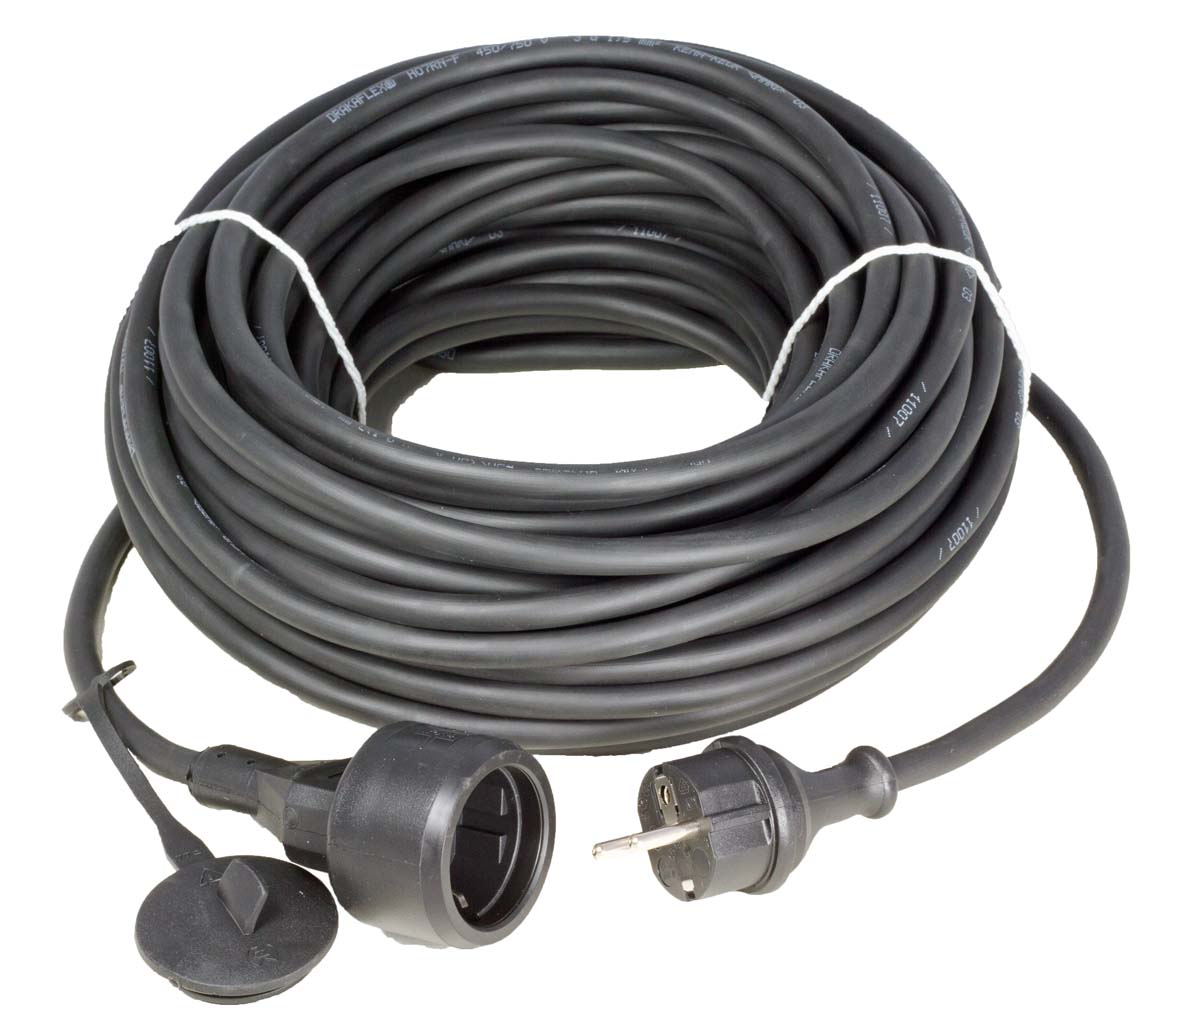 extension cord rubber, IP44